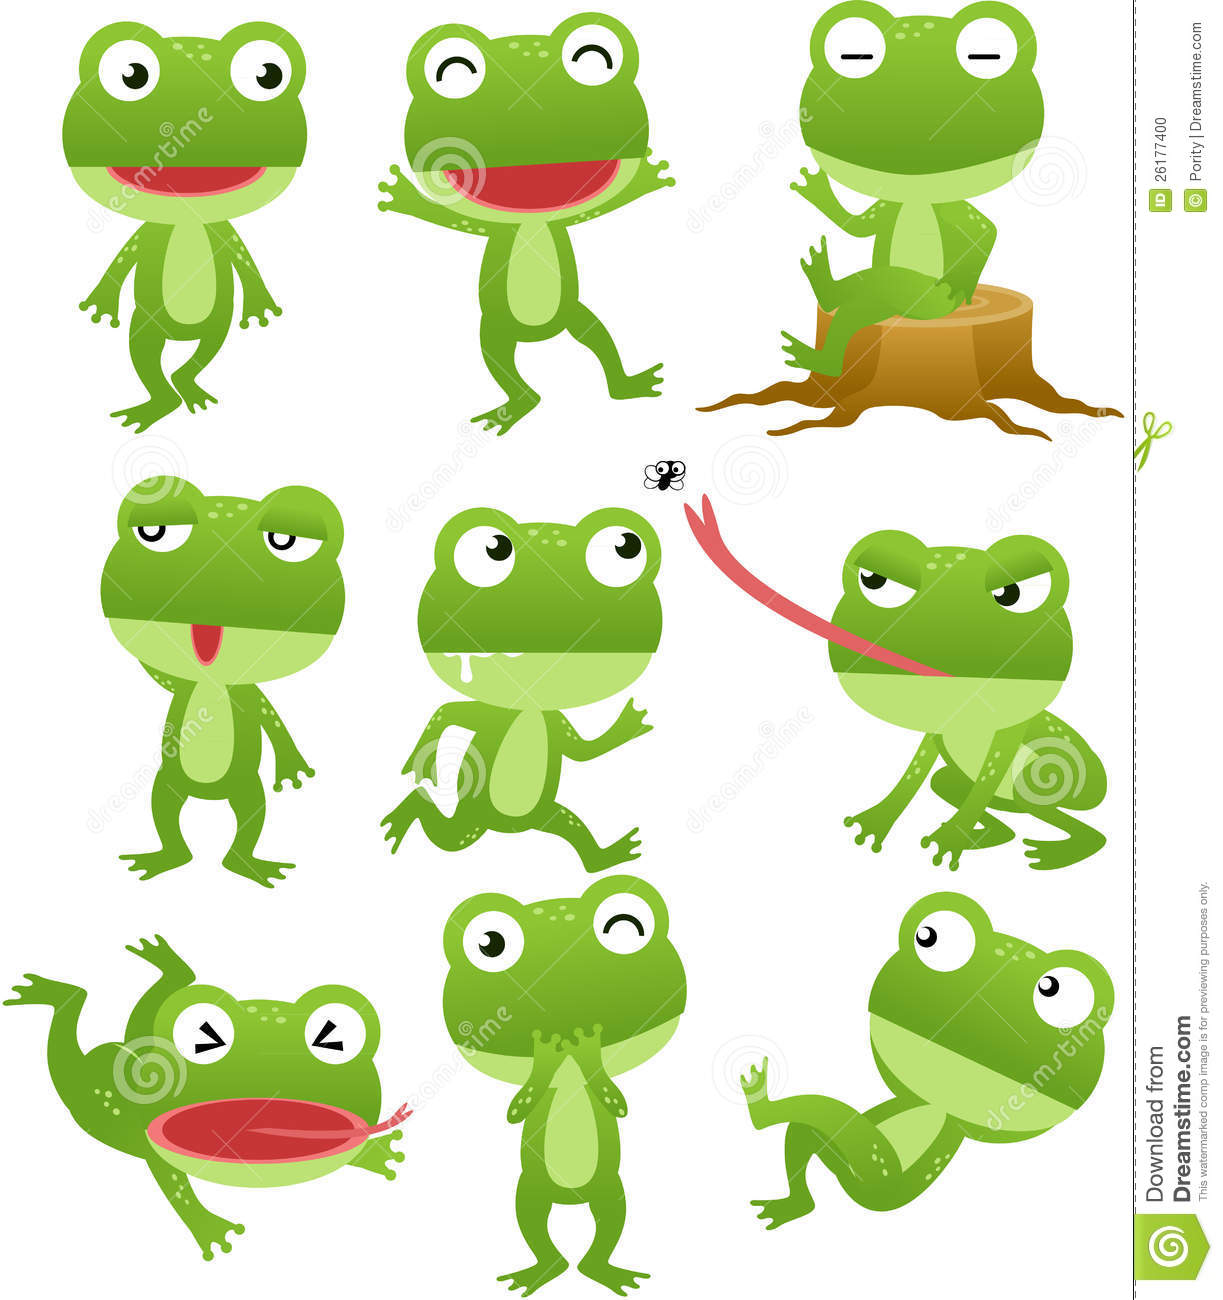 Animated frog wallpaper wallpapersafari - Frog cartoon wallpaper ...